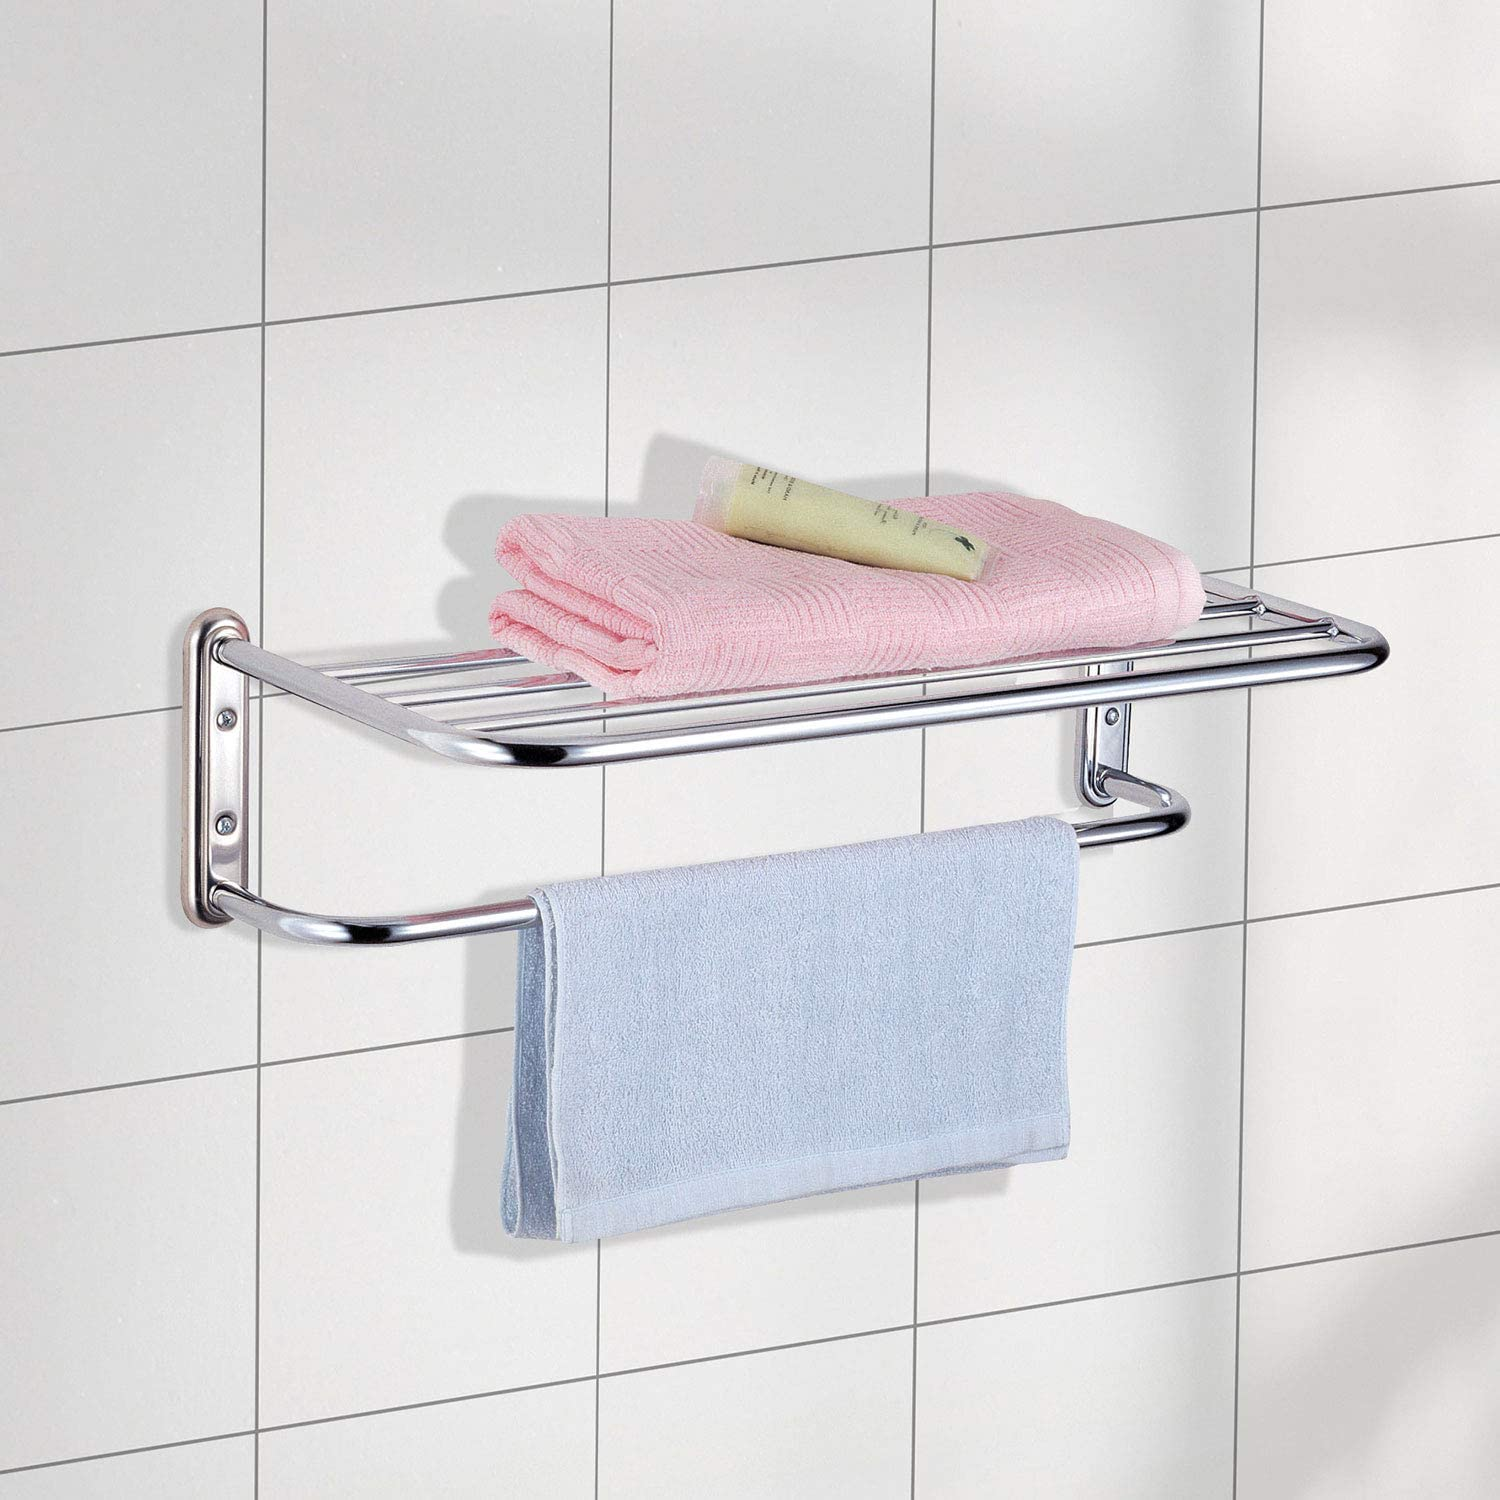 Chrome Wall Mounted Bathroom Towel Holder Shelf Rack by Top Home Solutions